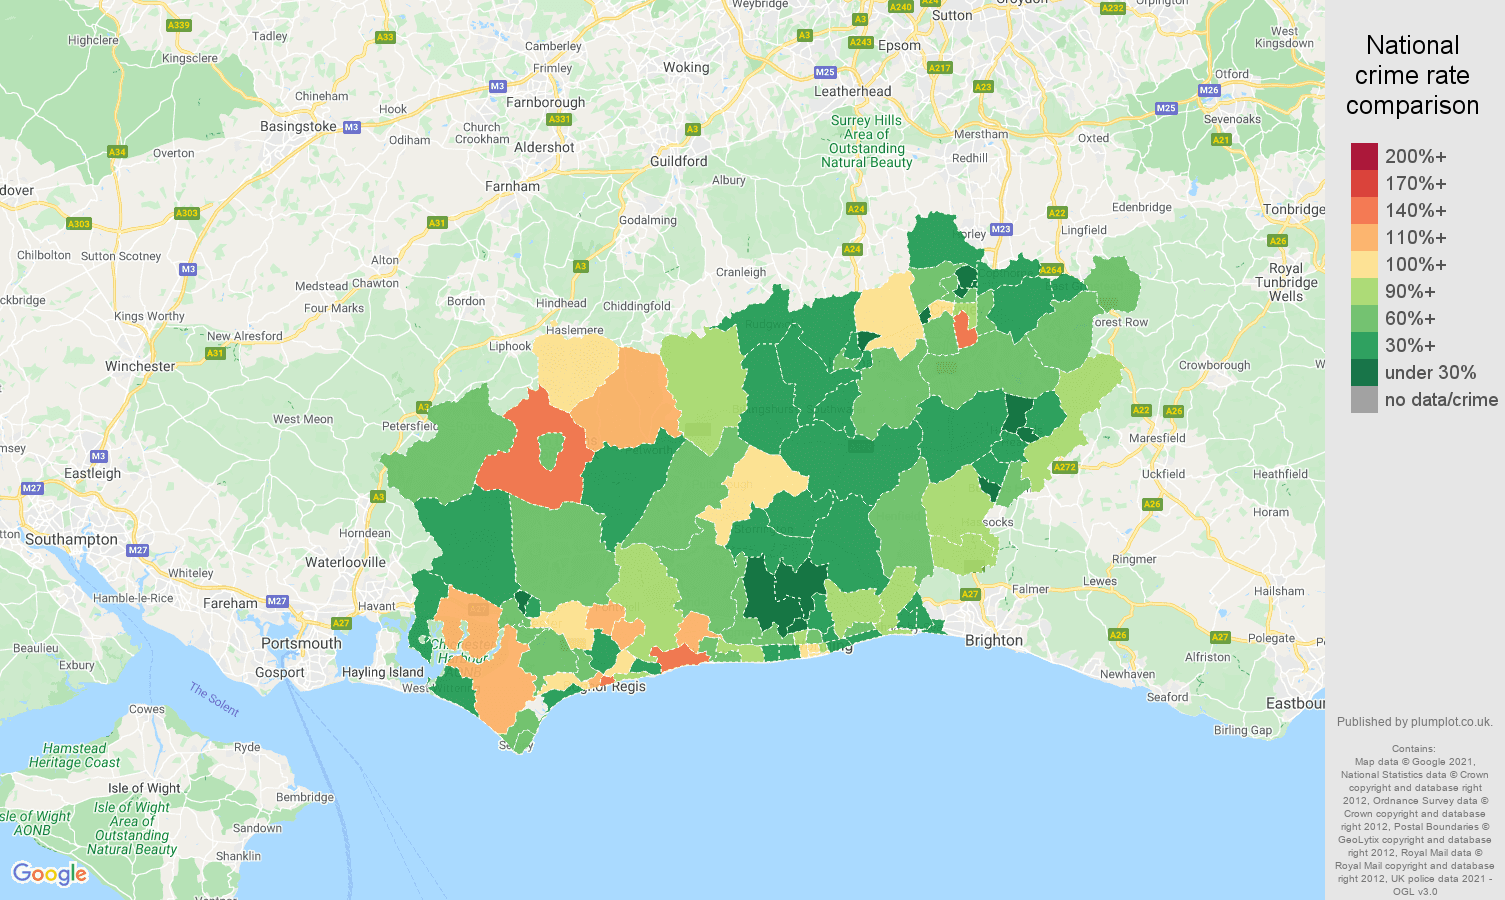 West Sussex burglary crime rate comparison map